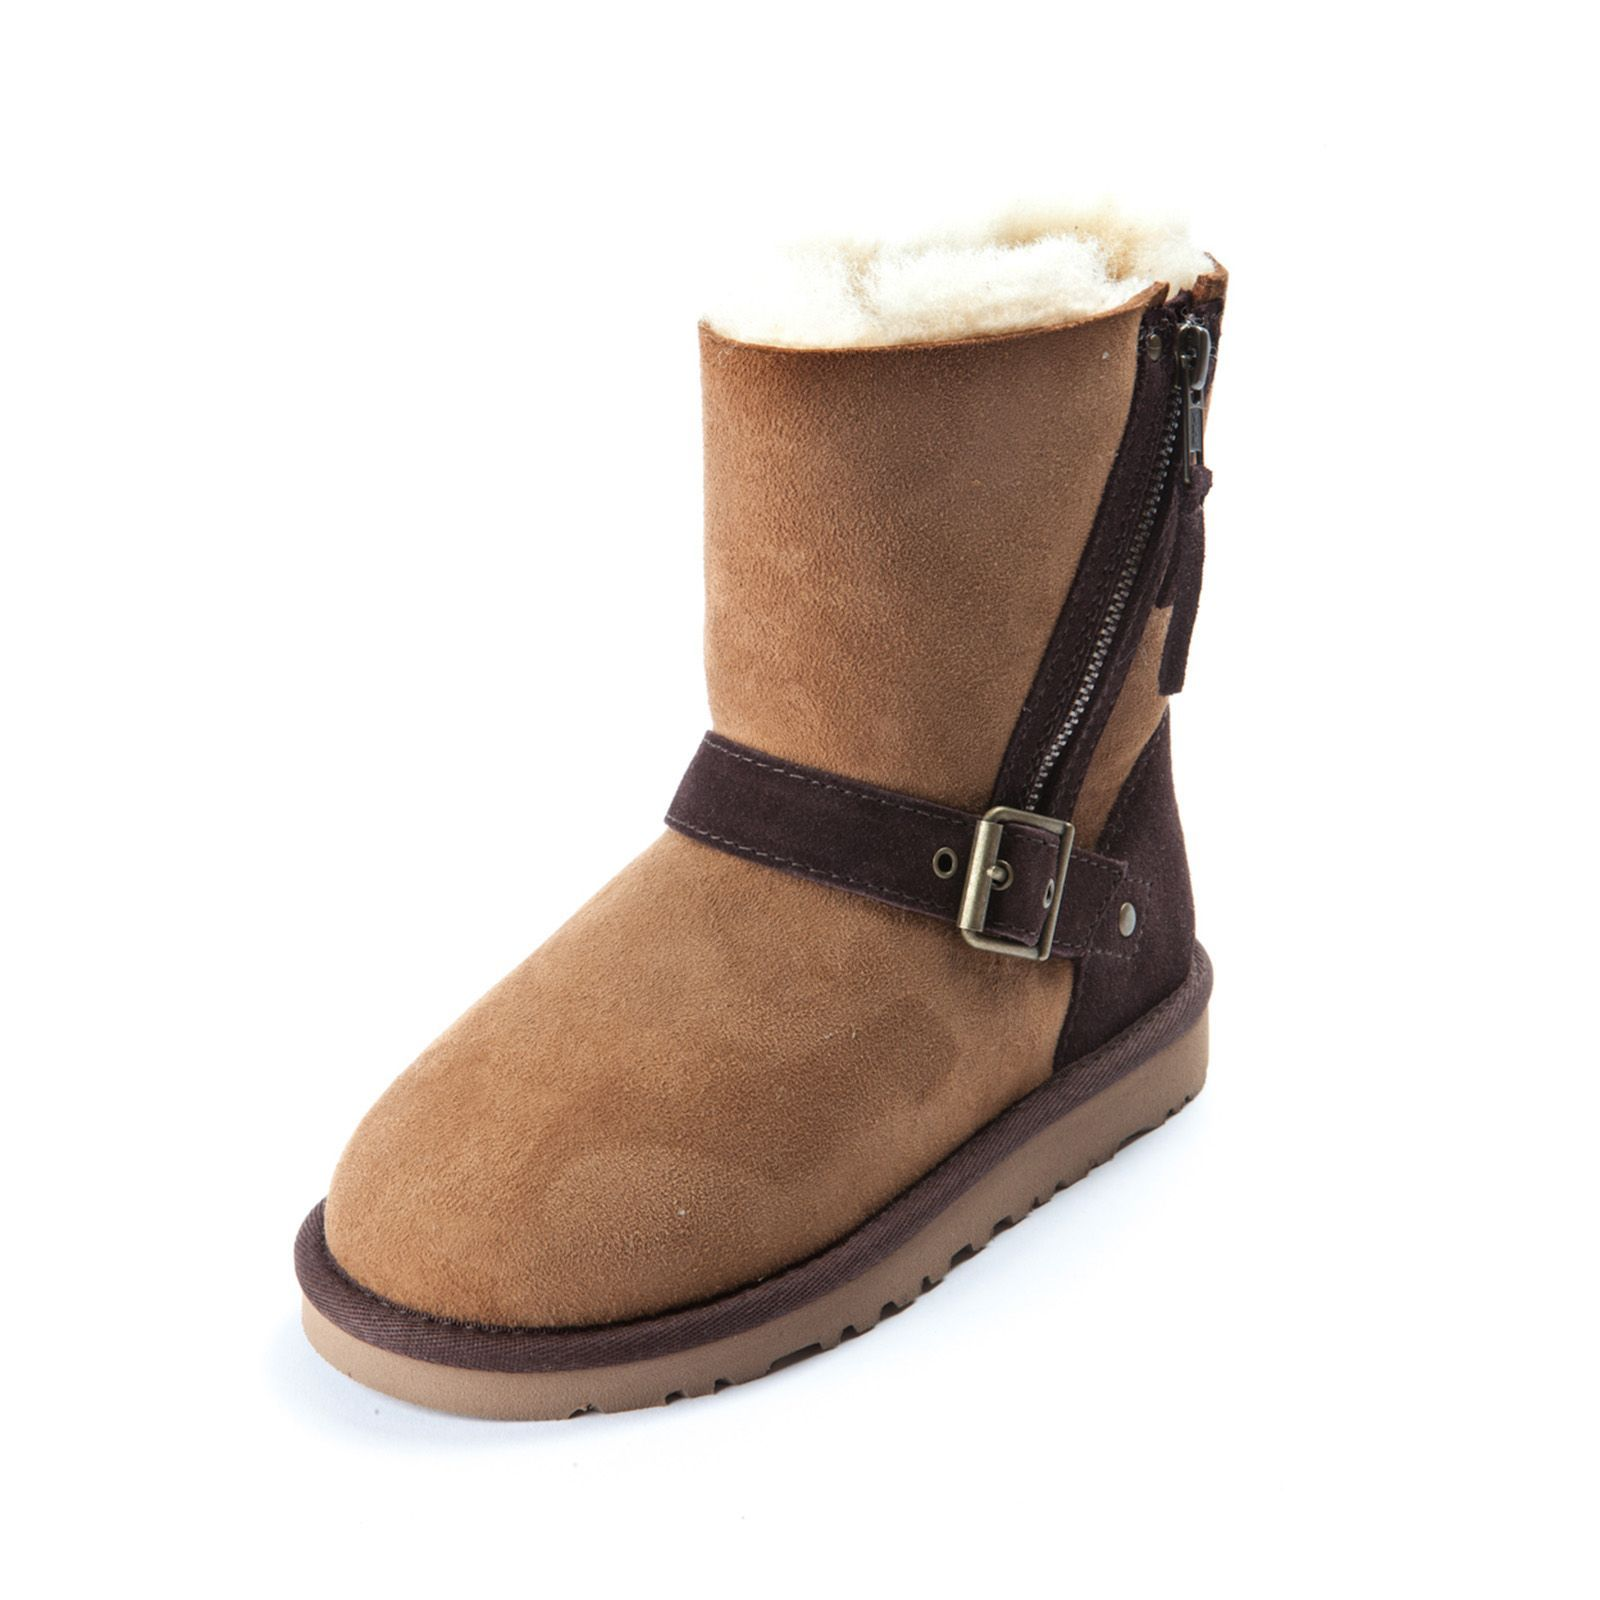 Ugg discount coupon